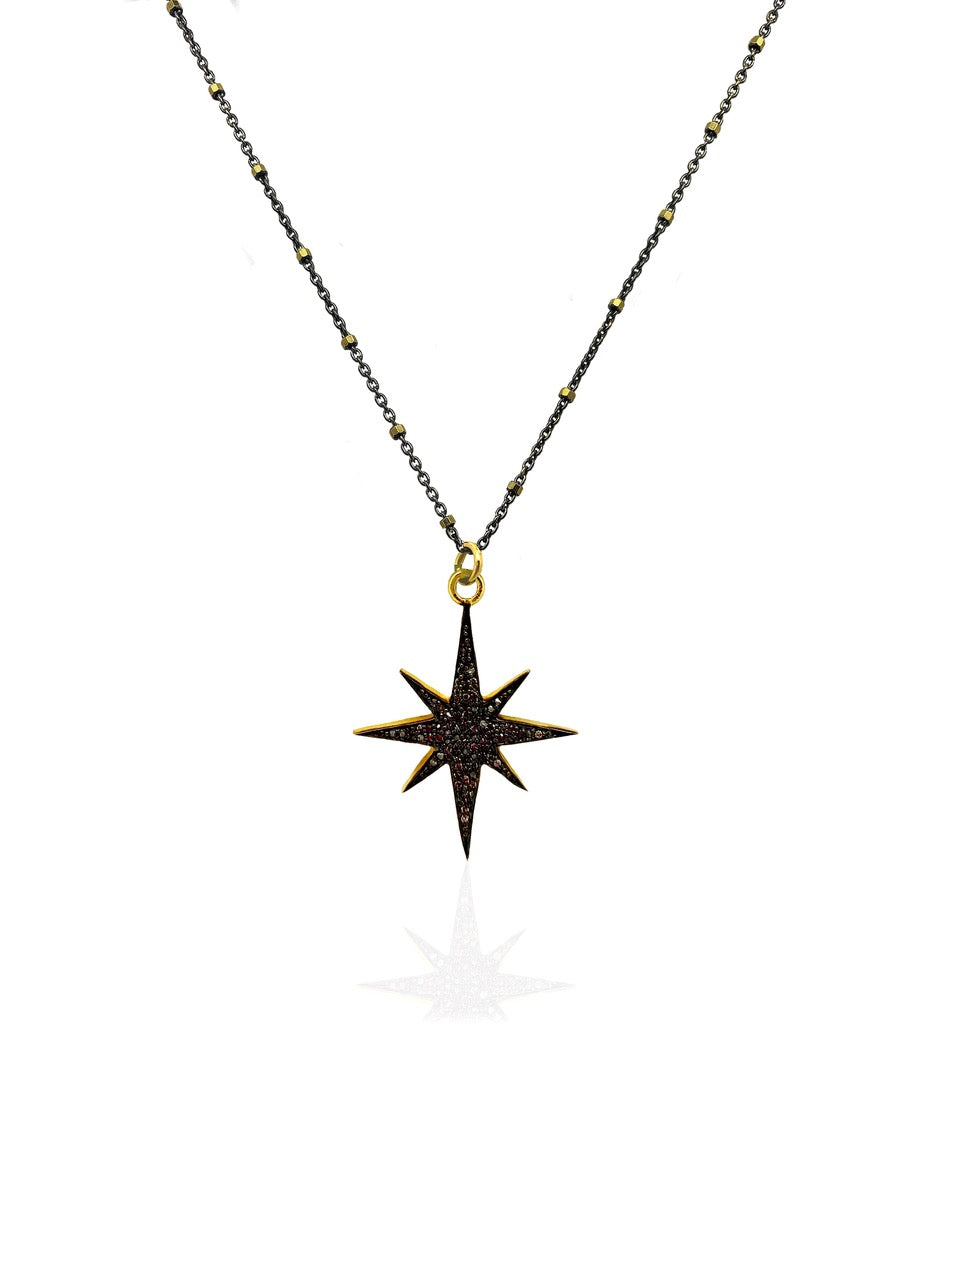 Tiny Starburst Diamond Necklace